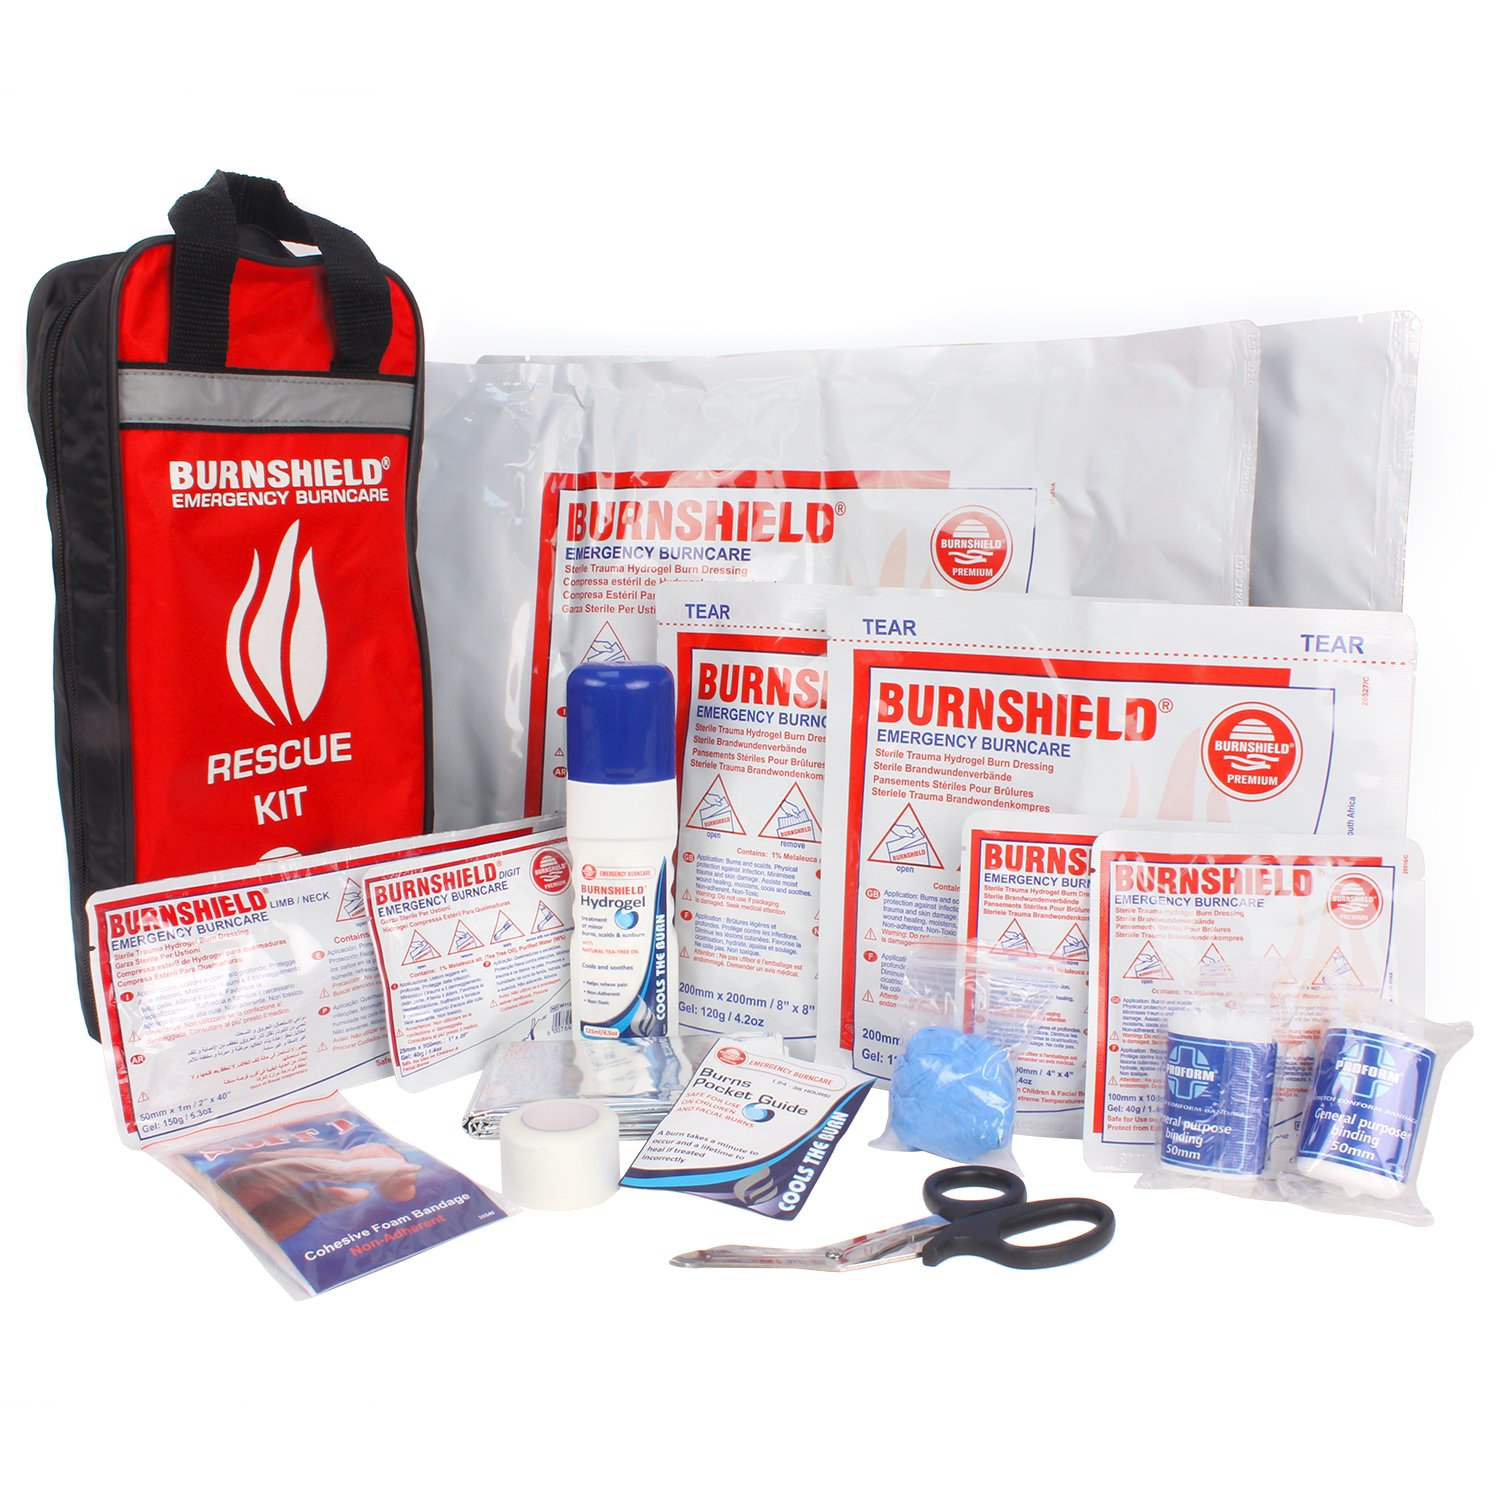 Burnshield Emergency Burn Kit & Nylon Bag with Bandages, Scissor, and Tape